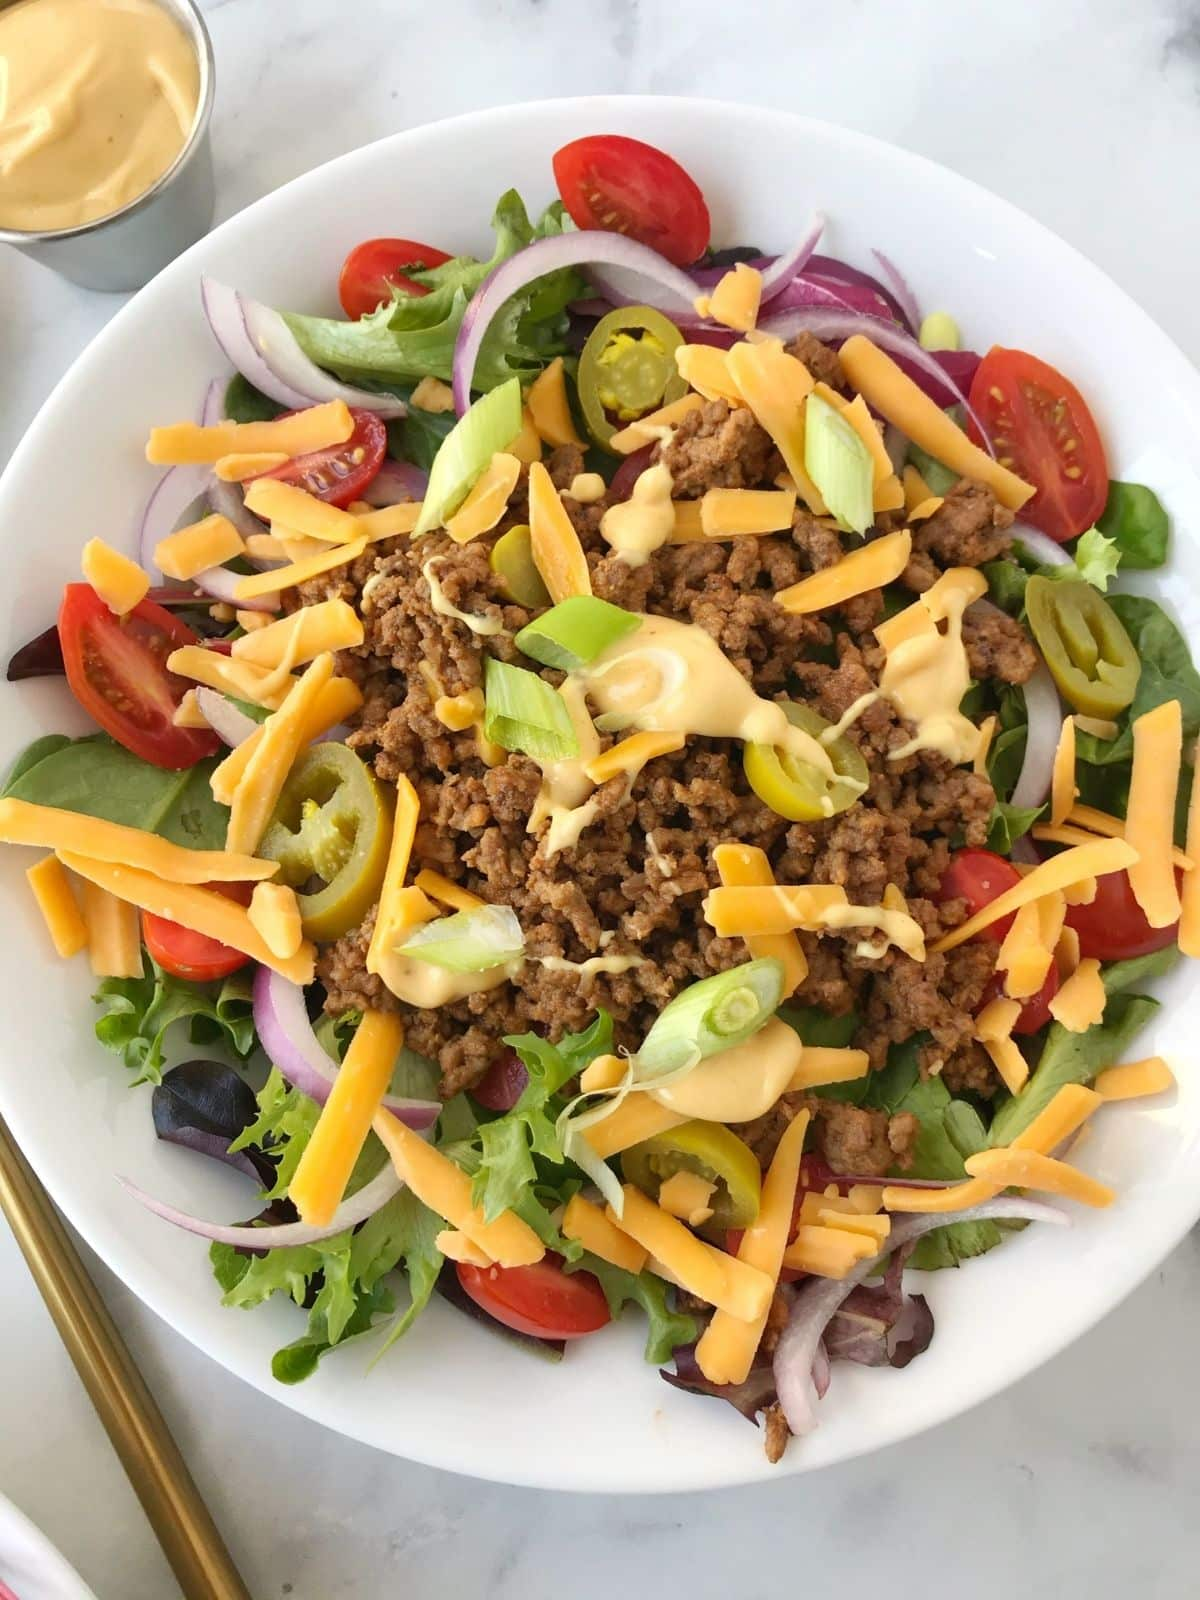 bowl of salad with toppings